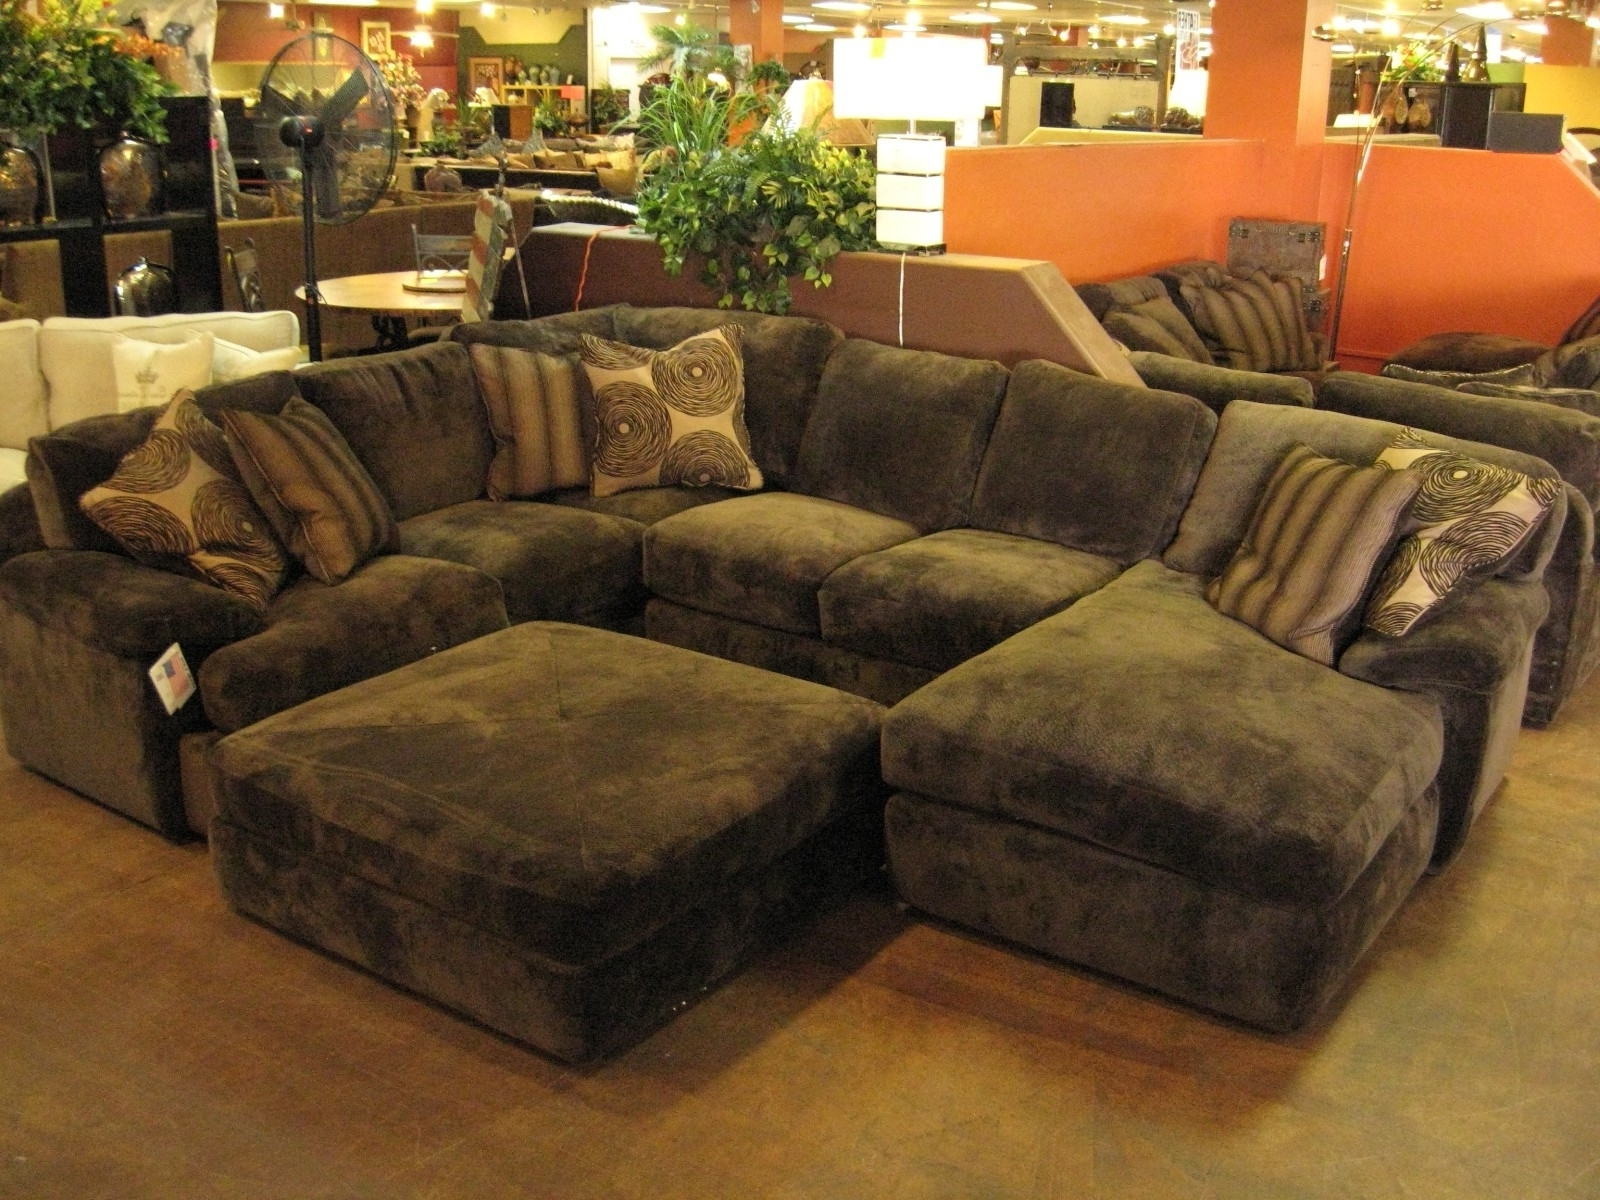 Most Popular Jacksonville Florida Sectional Sofas Pertaining To Photos Sectional Sofas Jacksonville Fl – Buildsimplehome (View 3 of 20)